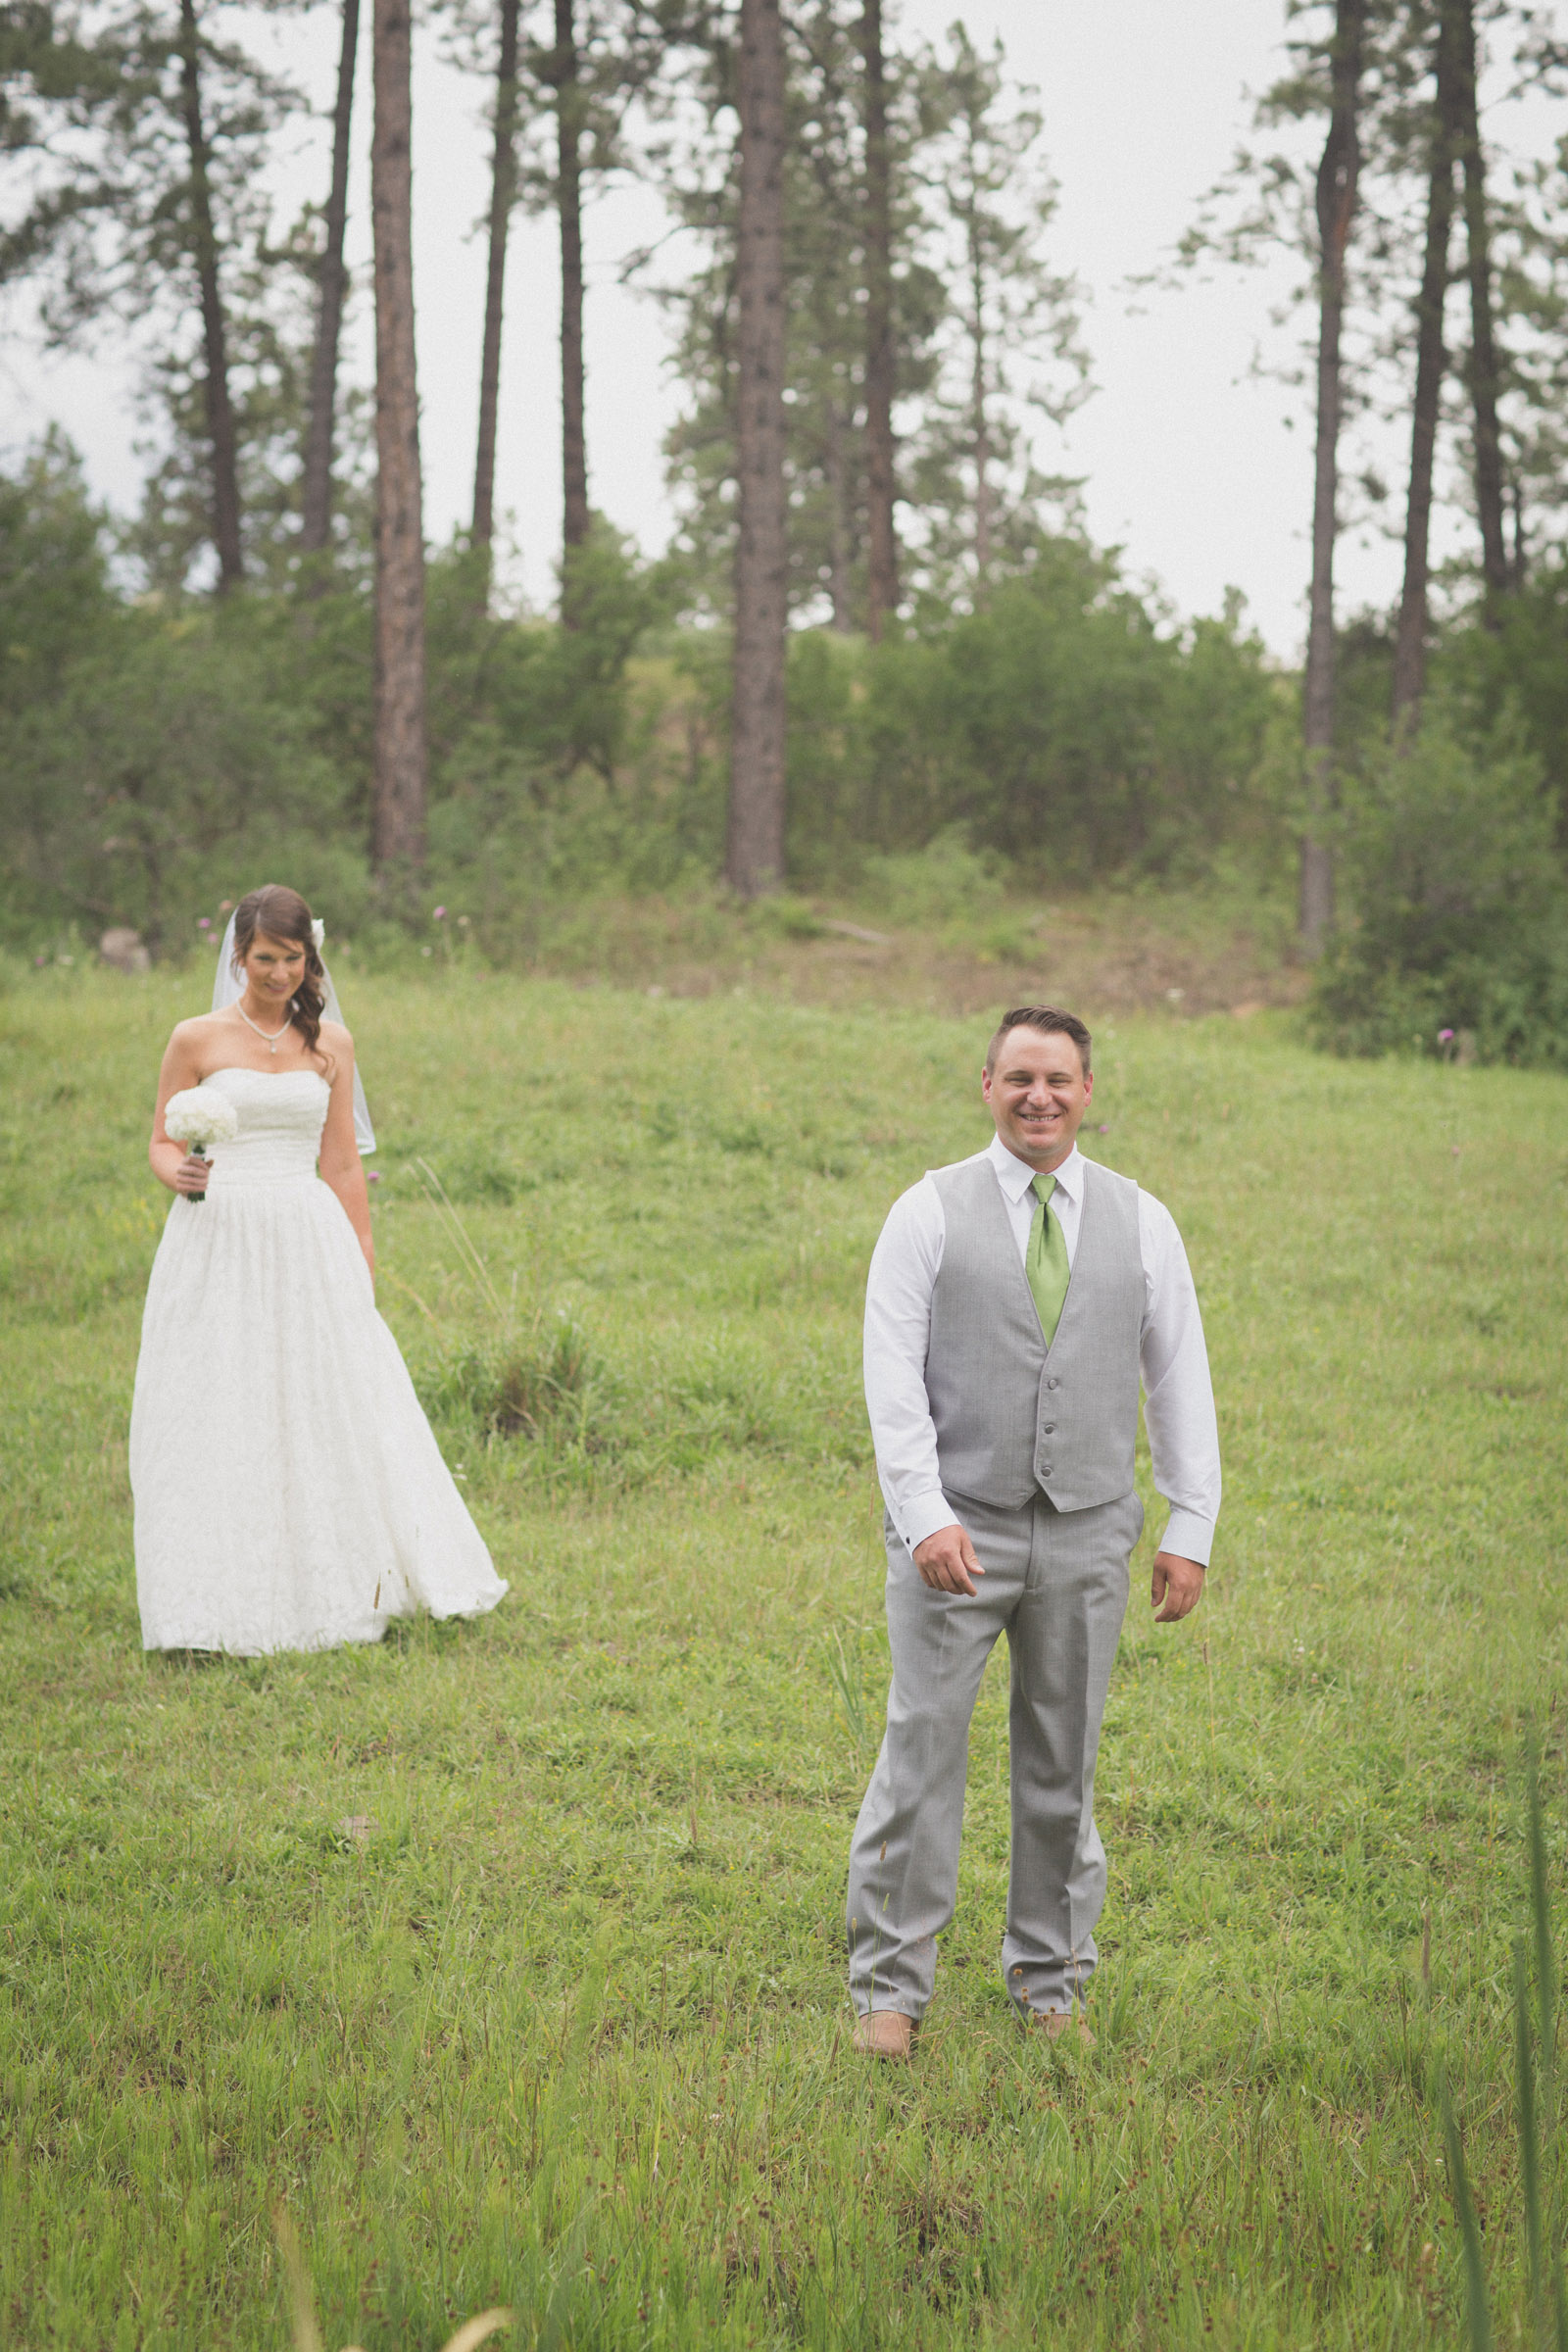 groom bride wedding cabin woods forest pictures photos dress photography portraits first look firstlook reveal happy farmington aztec durango mancos co nm